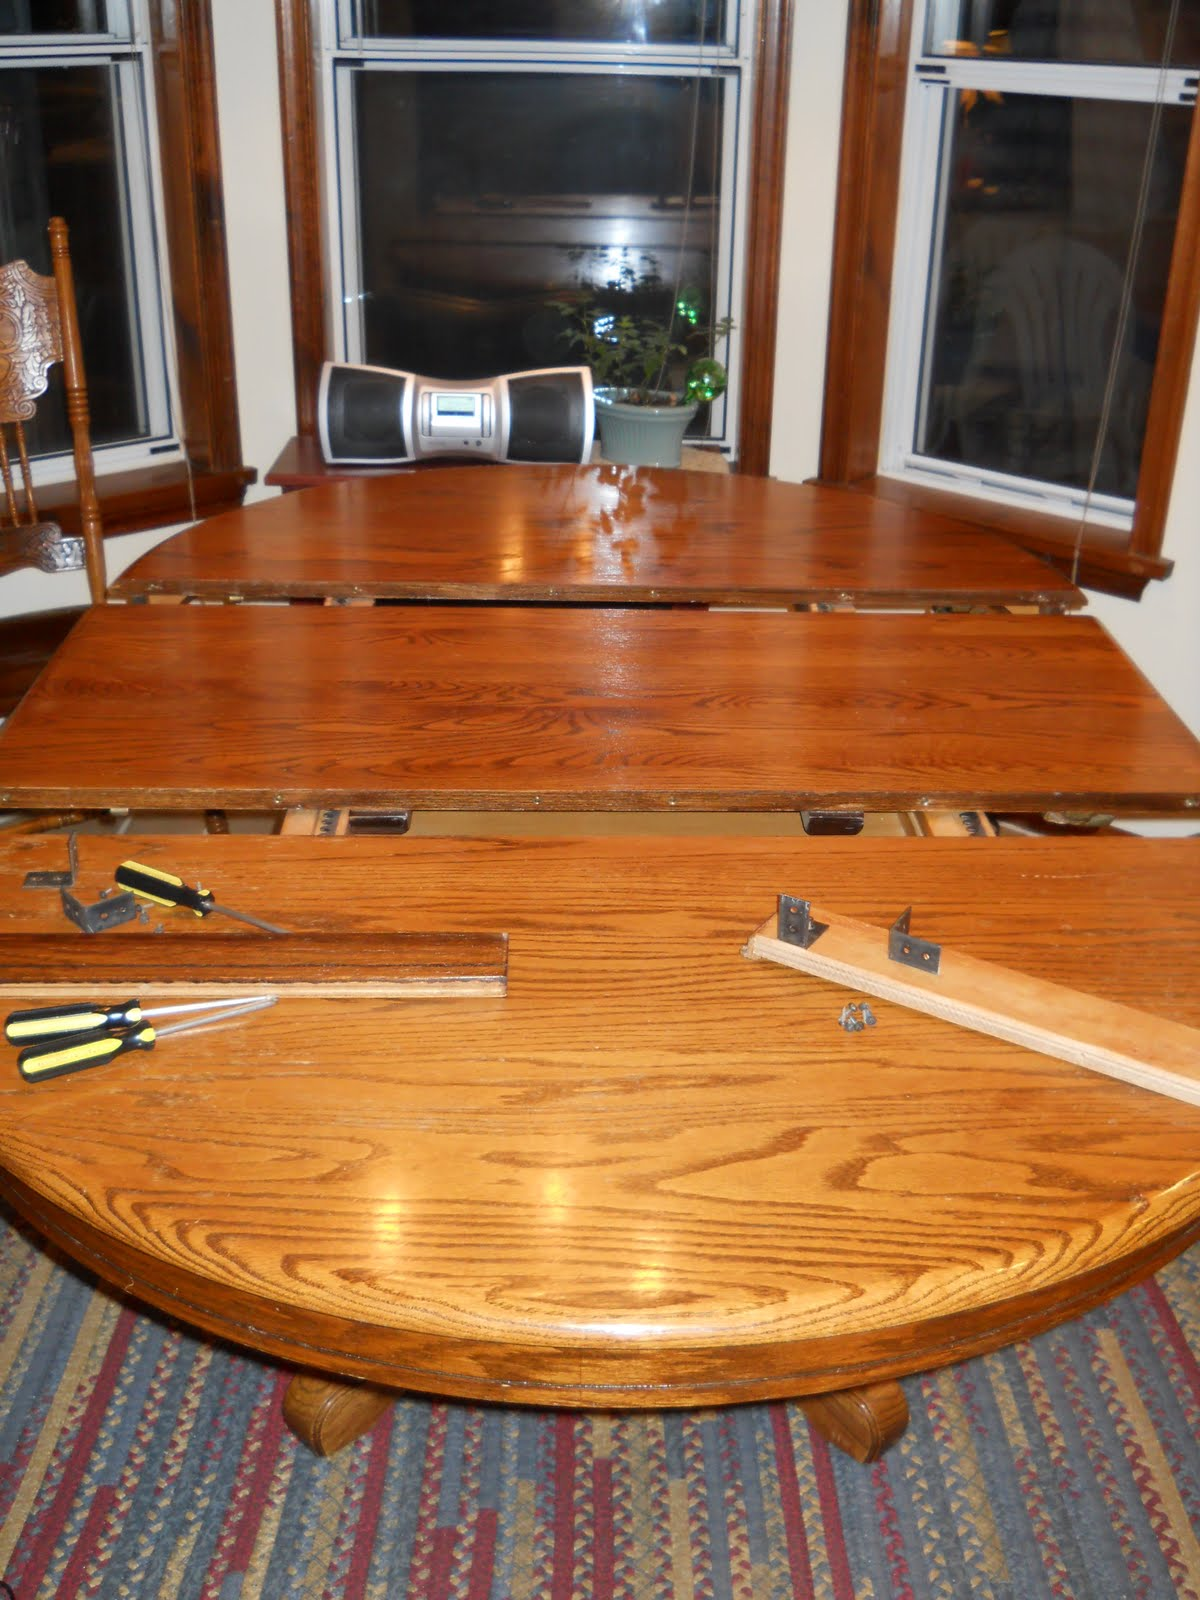 Celtic heart knitting and quilting refinishing the kitchen table before pictures - Refinishing a kitchen table ...